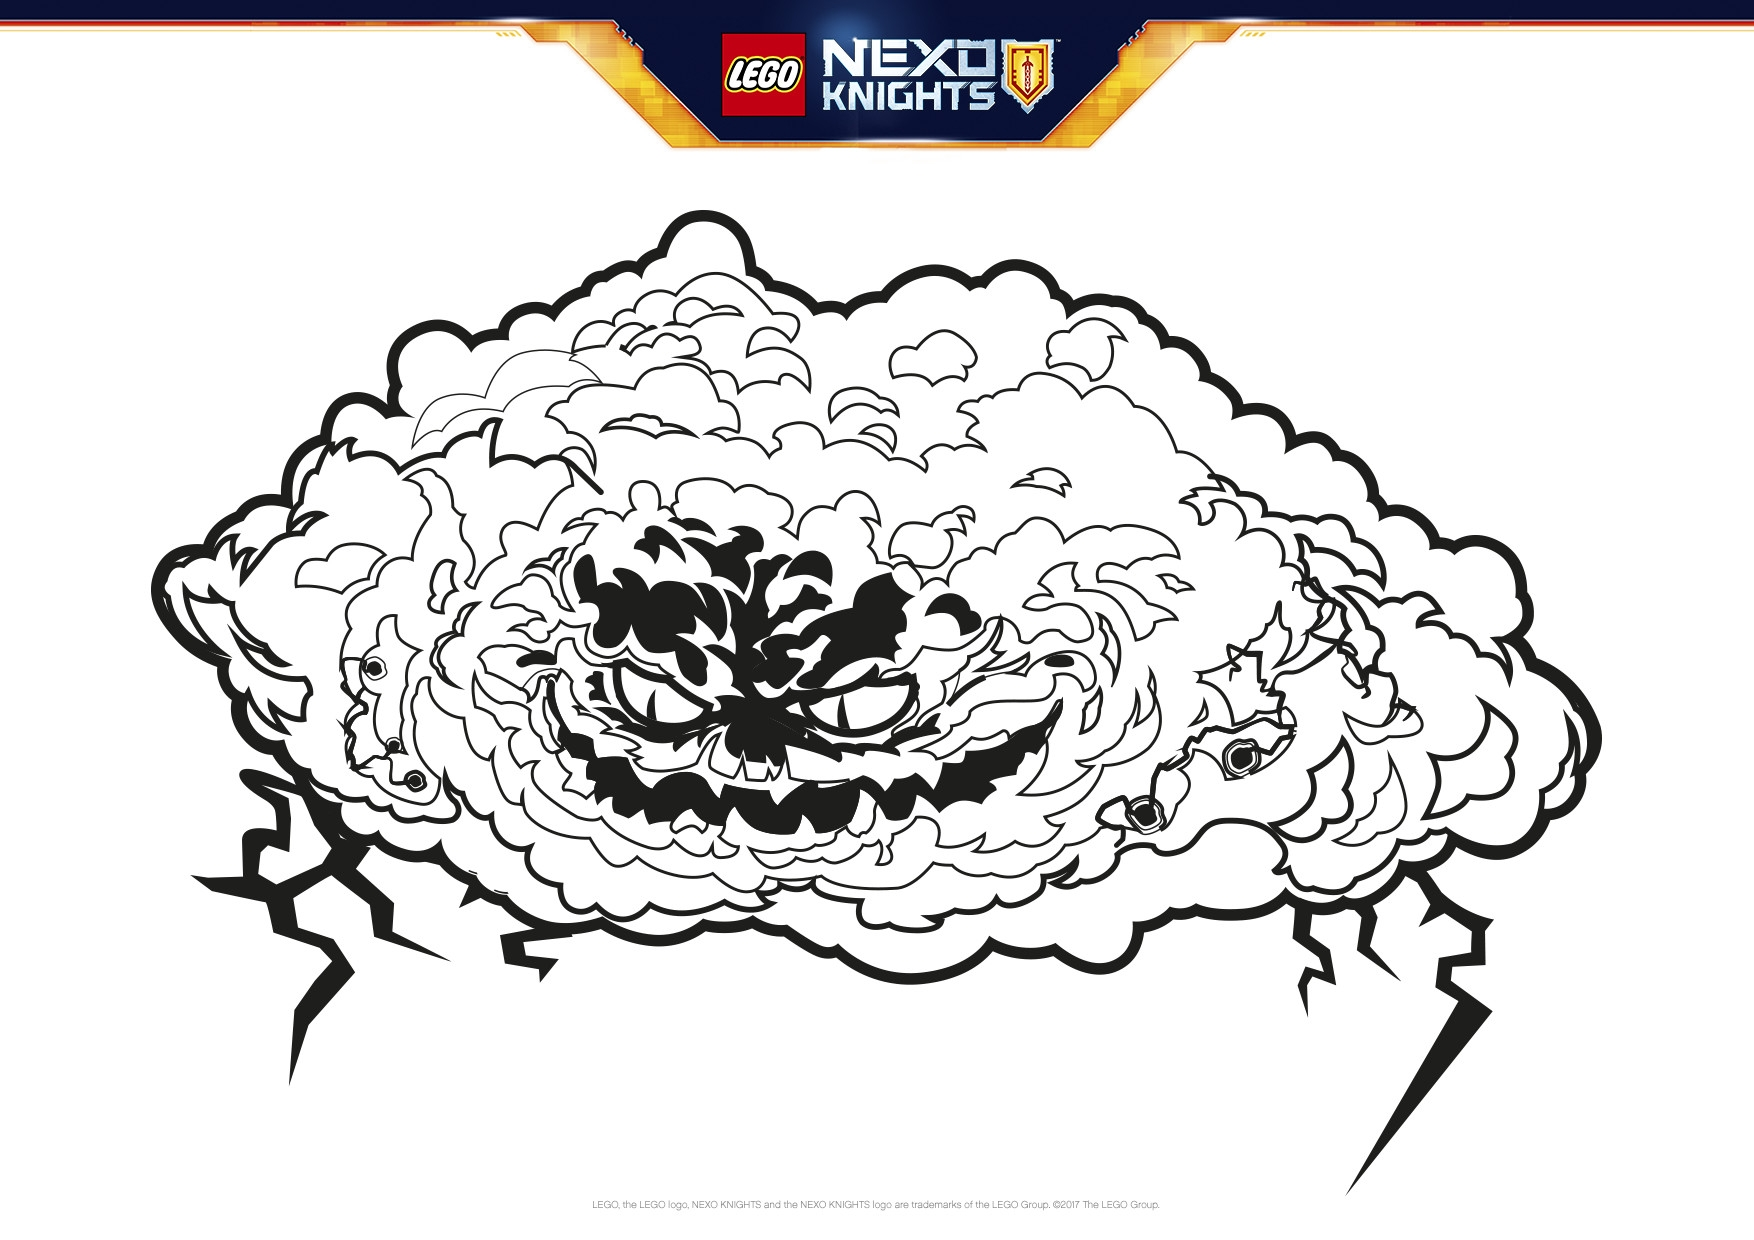 28 Lego Nexo Knights Coloring Pages Compilation Free Coloring